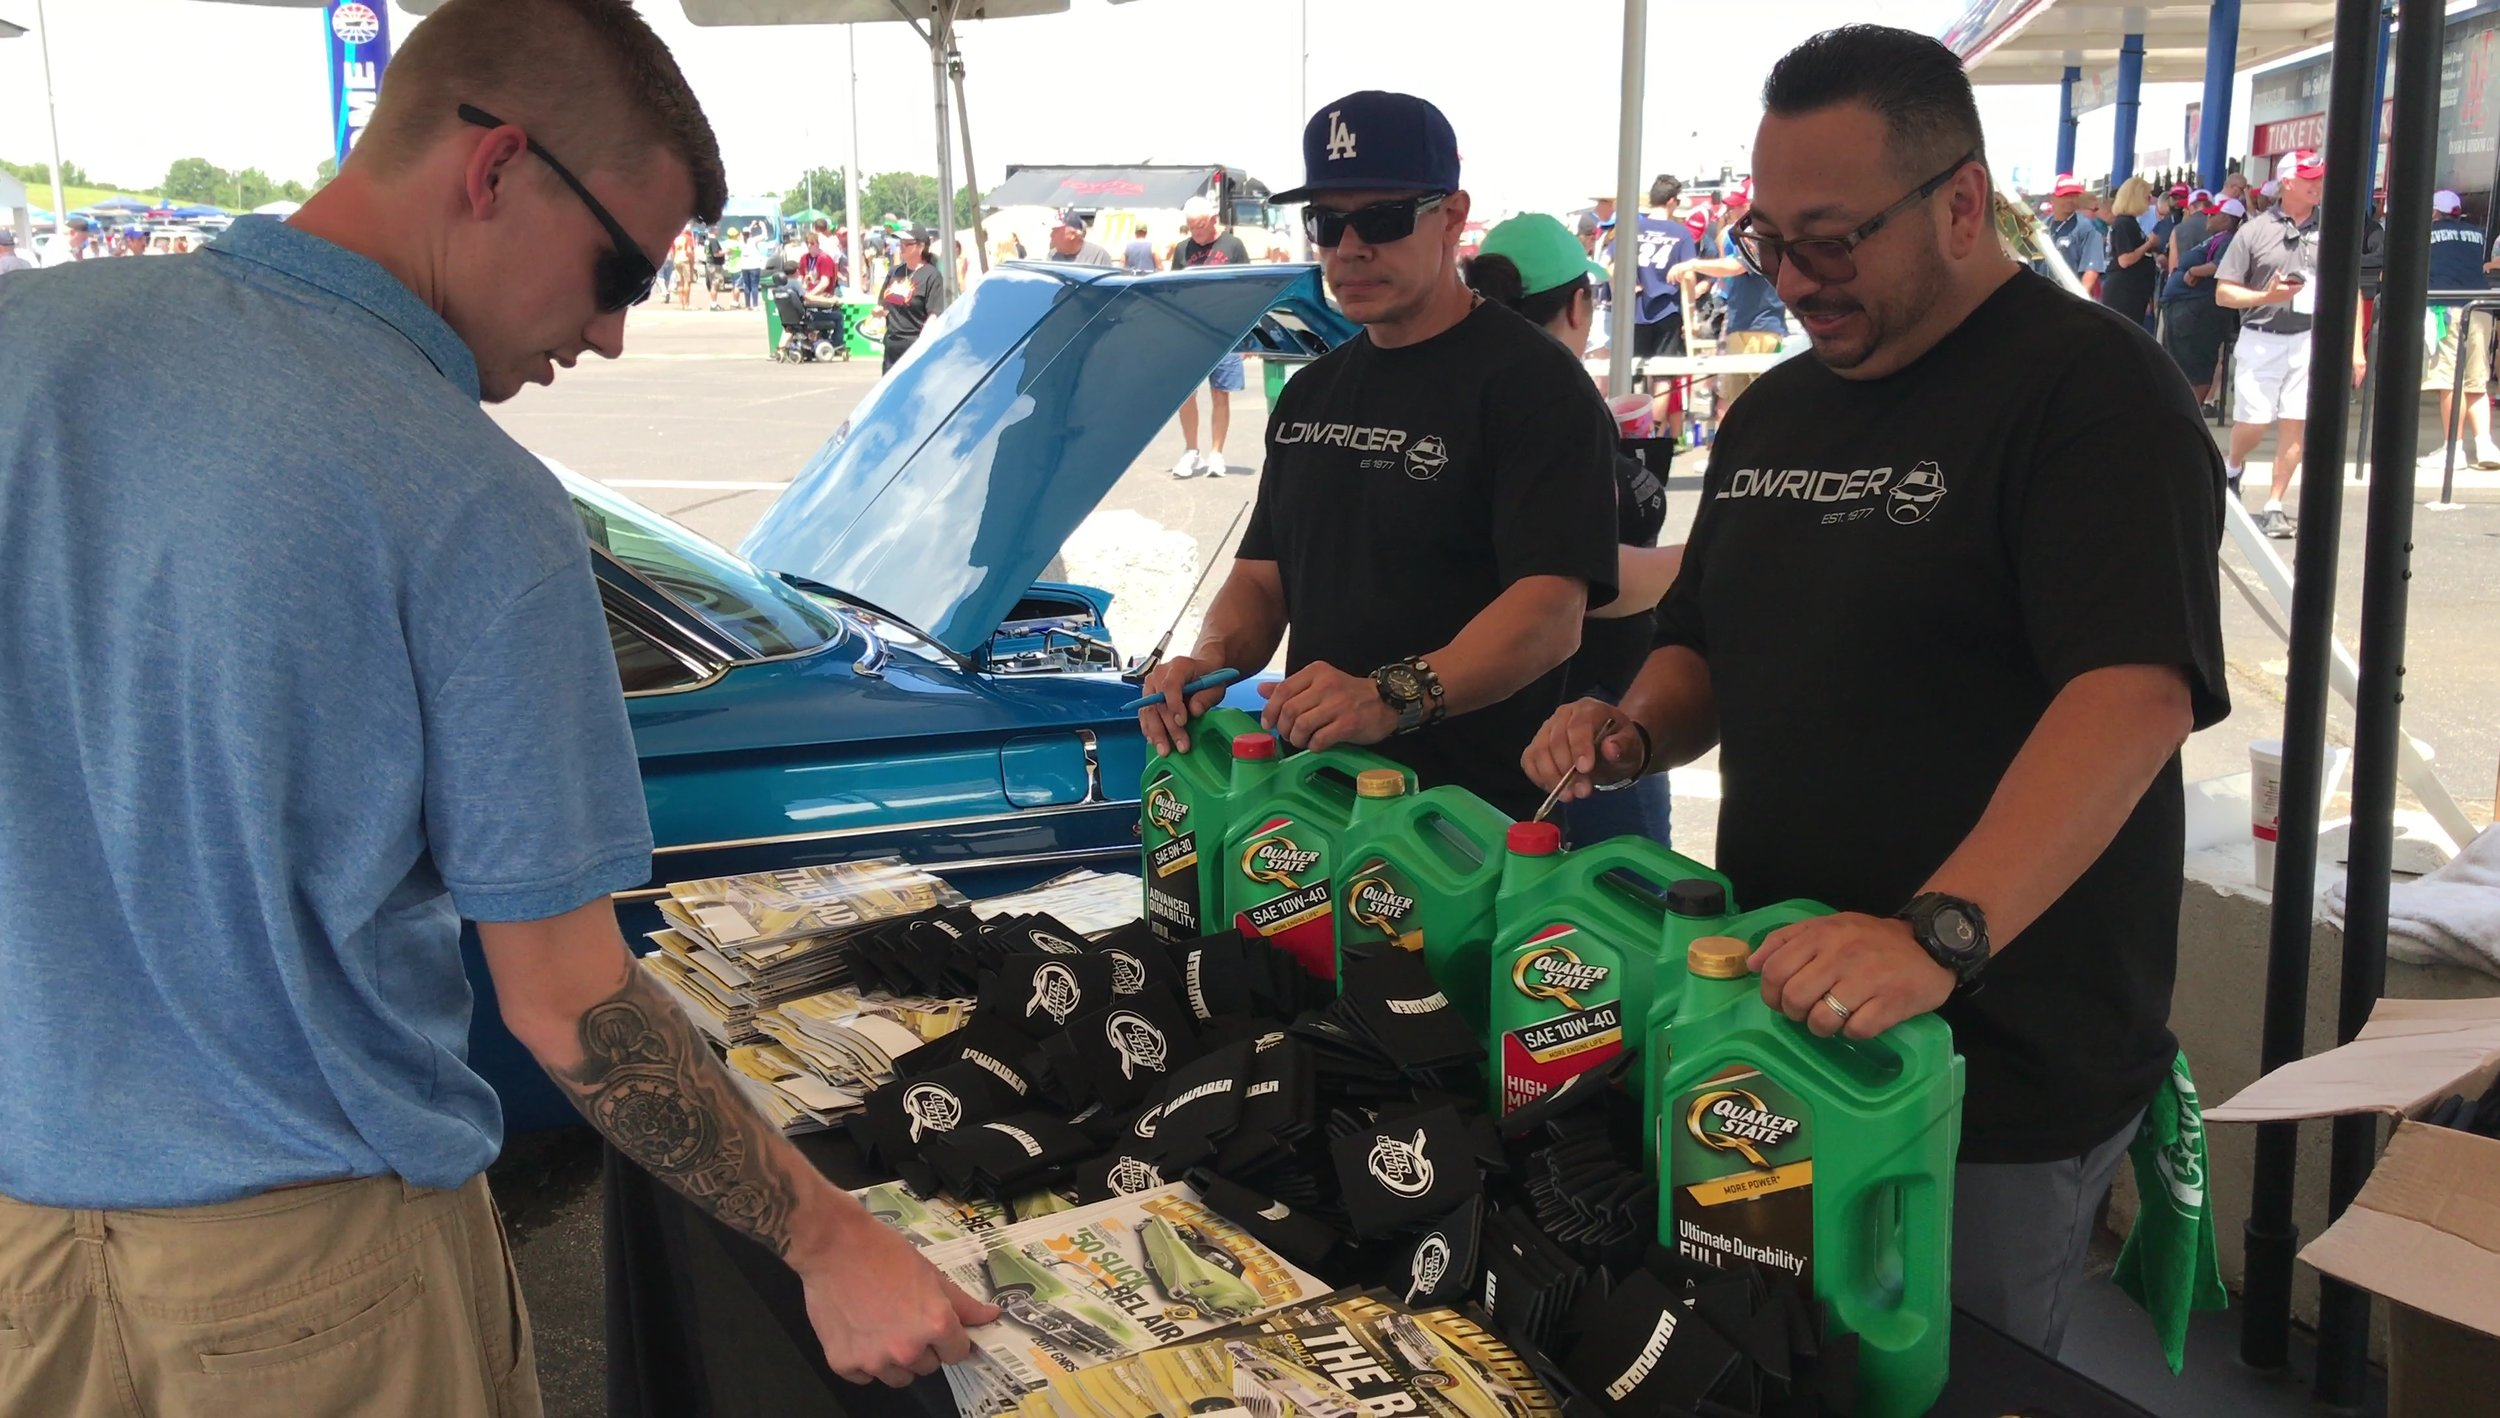 The Lowriders engage fans and customers ahead of the Quaker State 400.